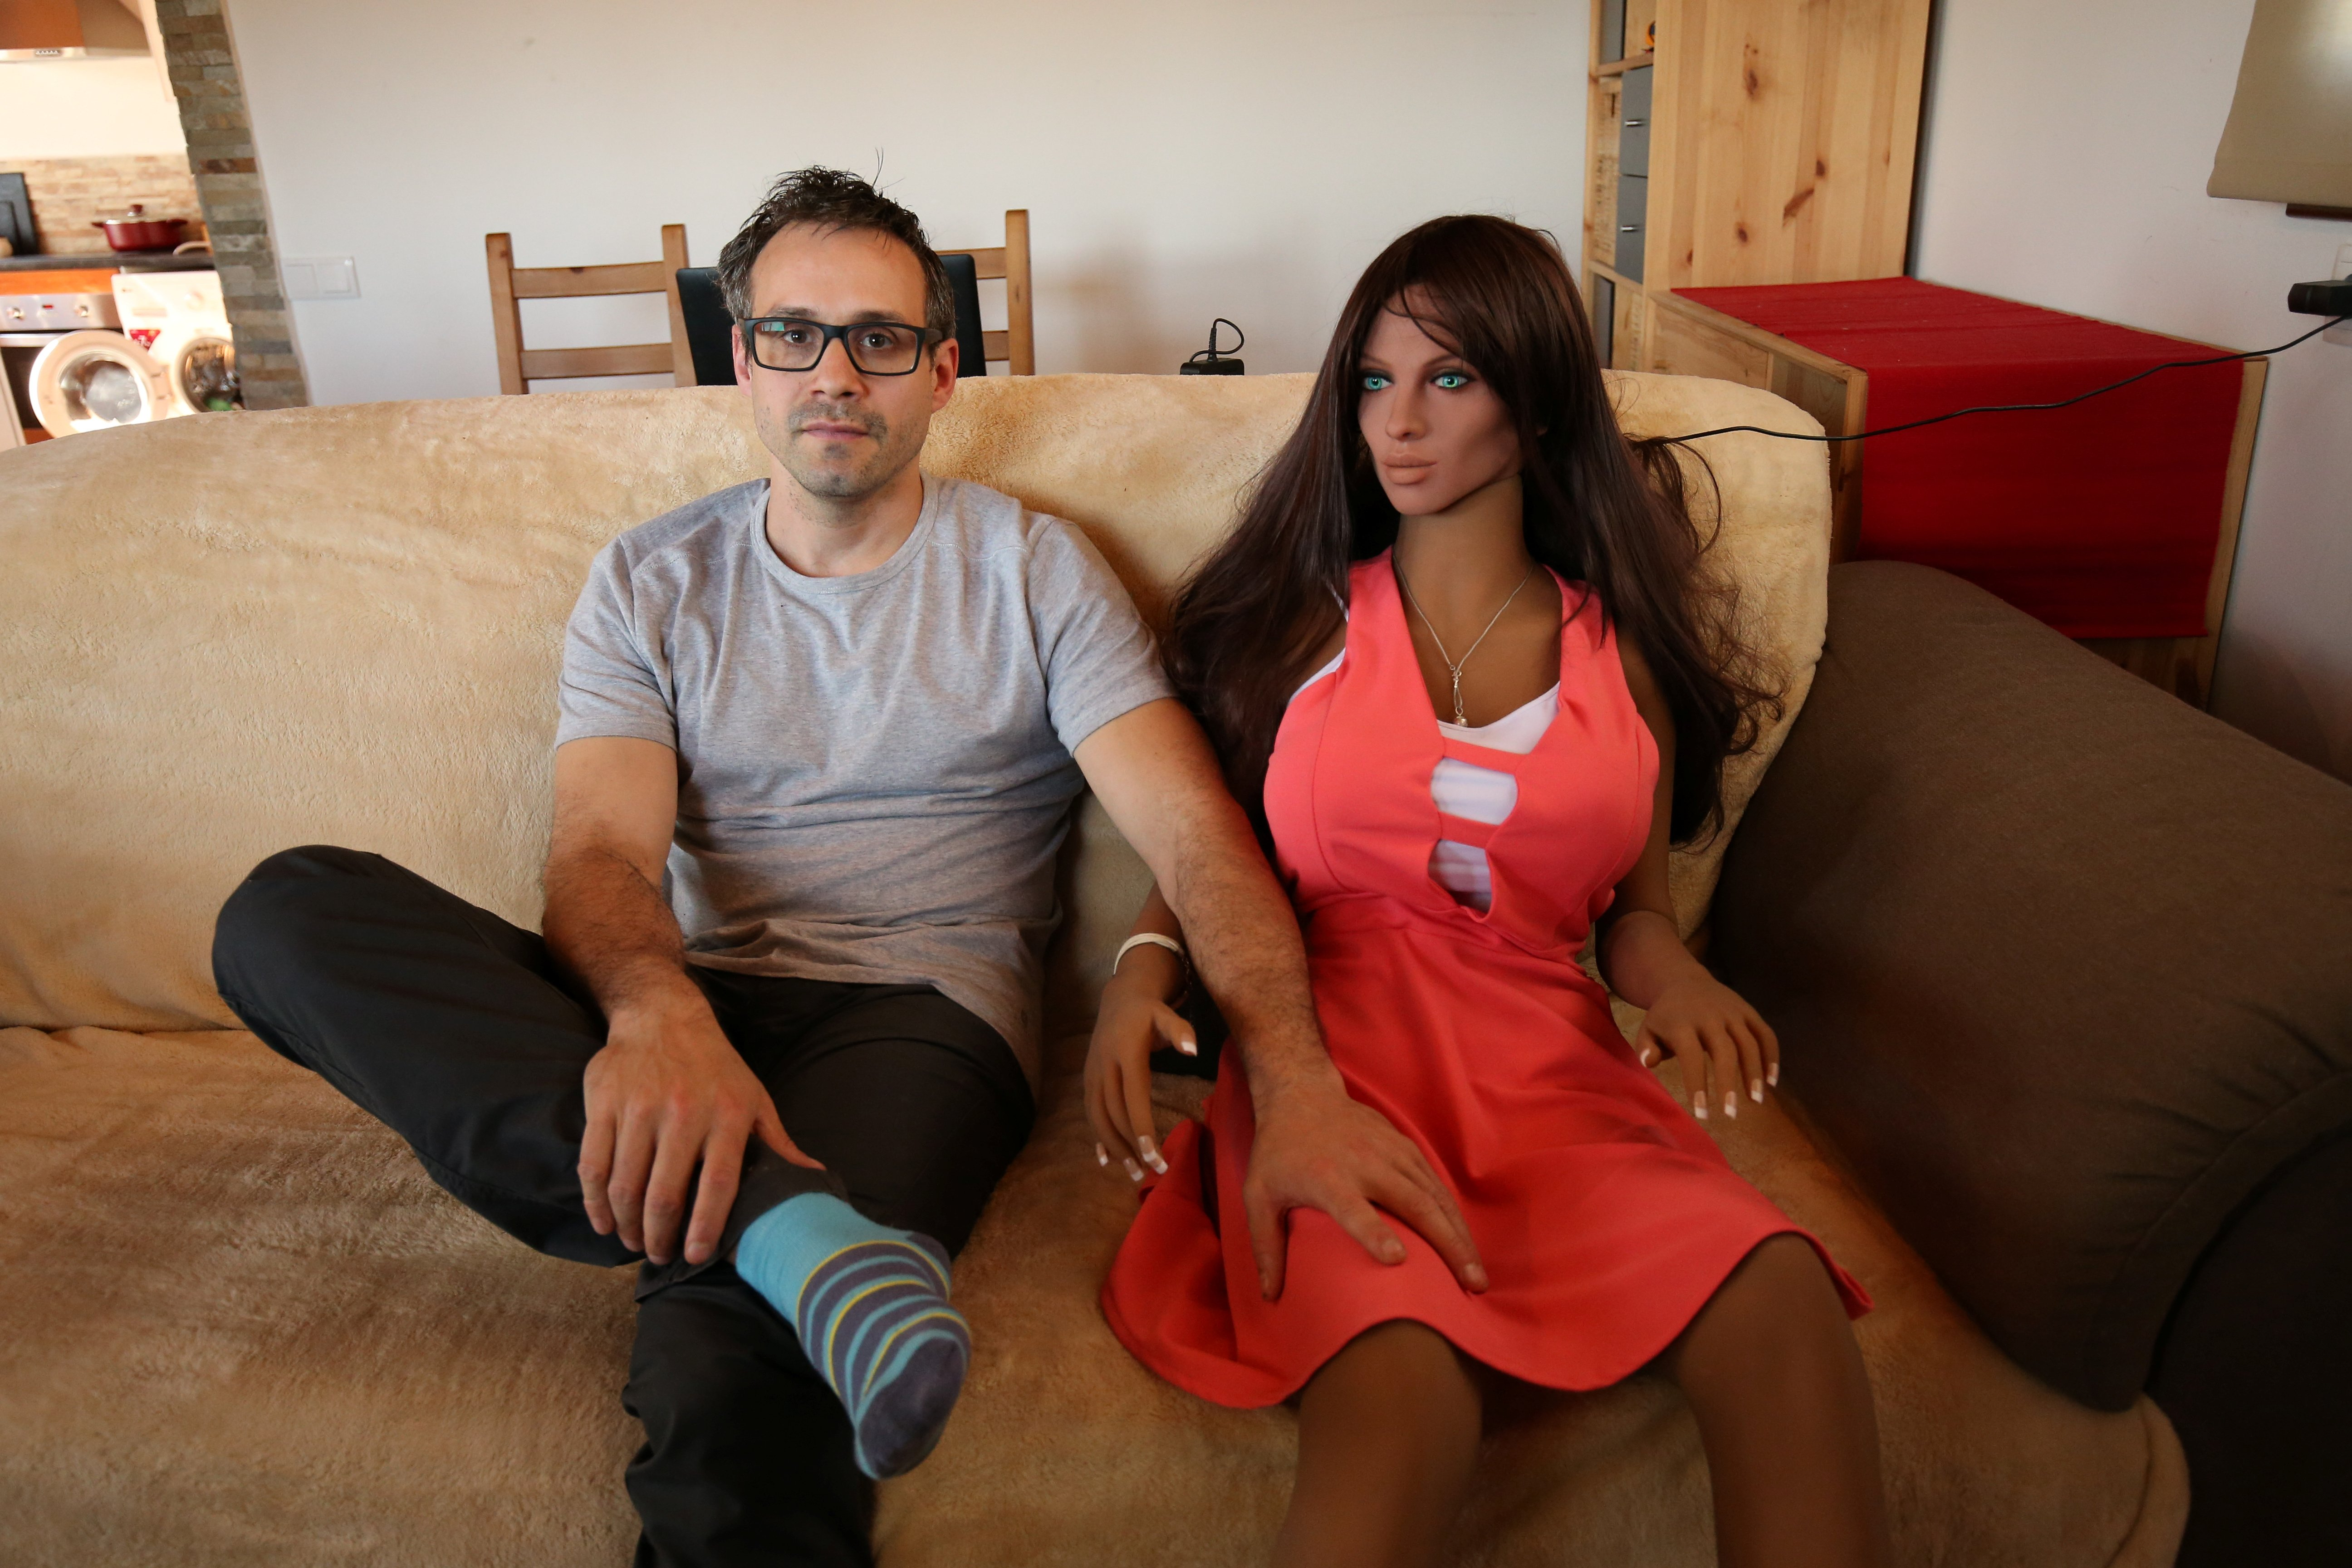 Catalan nanotechnology engineer Sergi Santos poses beside Samantha, a sex doll packed with artificial intelligence providing her the capability to respond to different scenarios and verbal stimulus, in his house in Rubi, north of Barcelona, Spain, March 31, 2017. REUTERS/Albert Gea